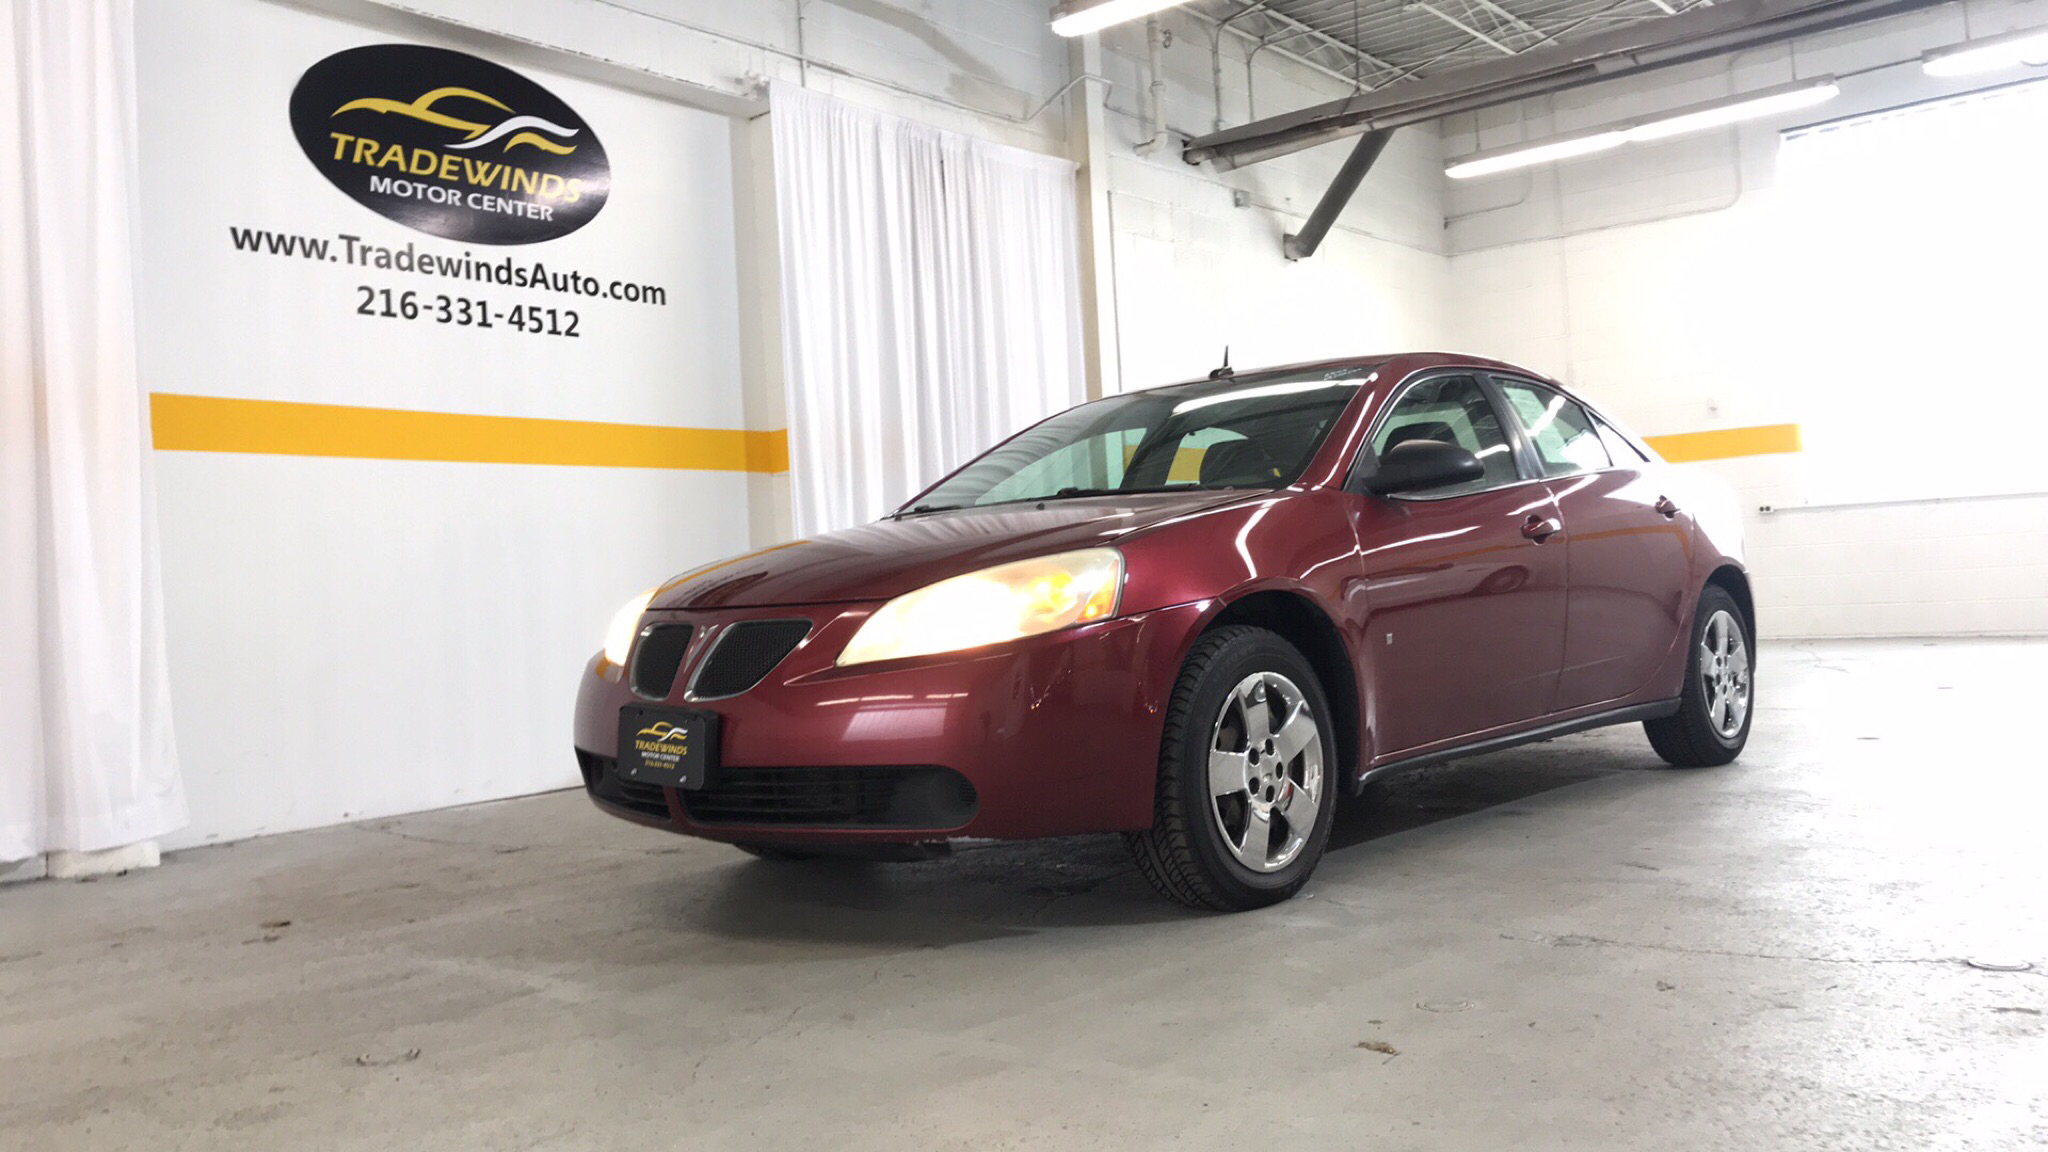 2008 PONTIAC G6 VALUE LEADER for sale at Tradewinds Motor Center